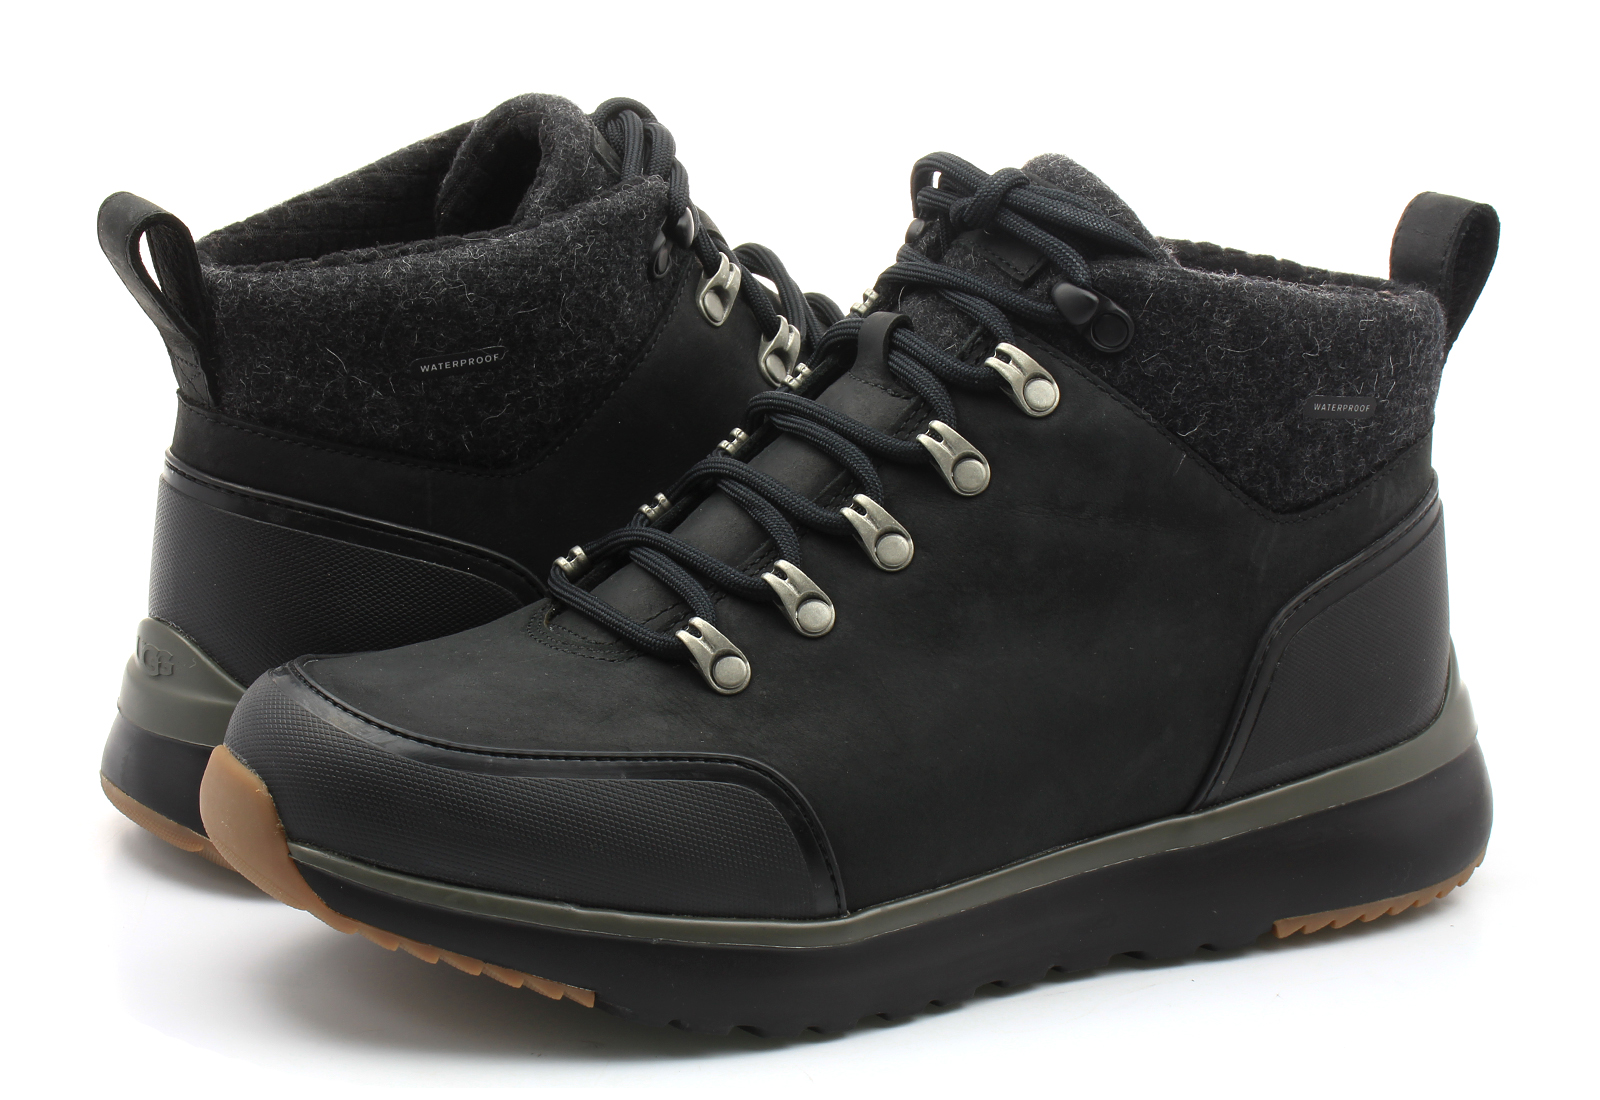 2b63b91842b Ugg Shoes - Olivert - 1017275-BLK - Online shop for sneakers, shoes and  boots